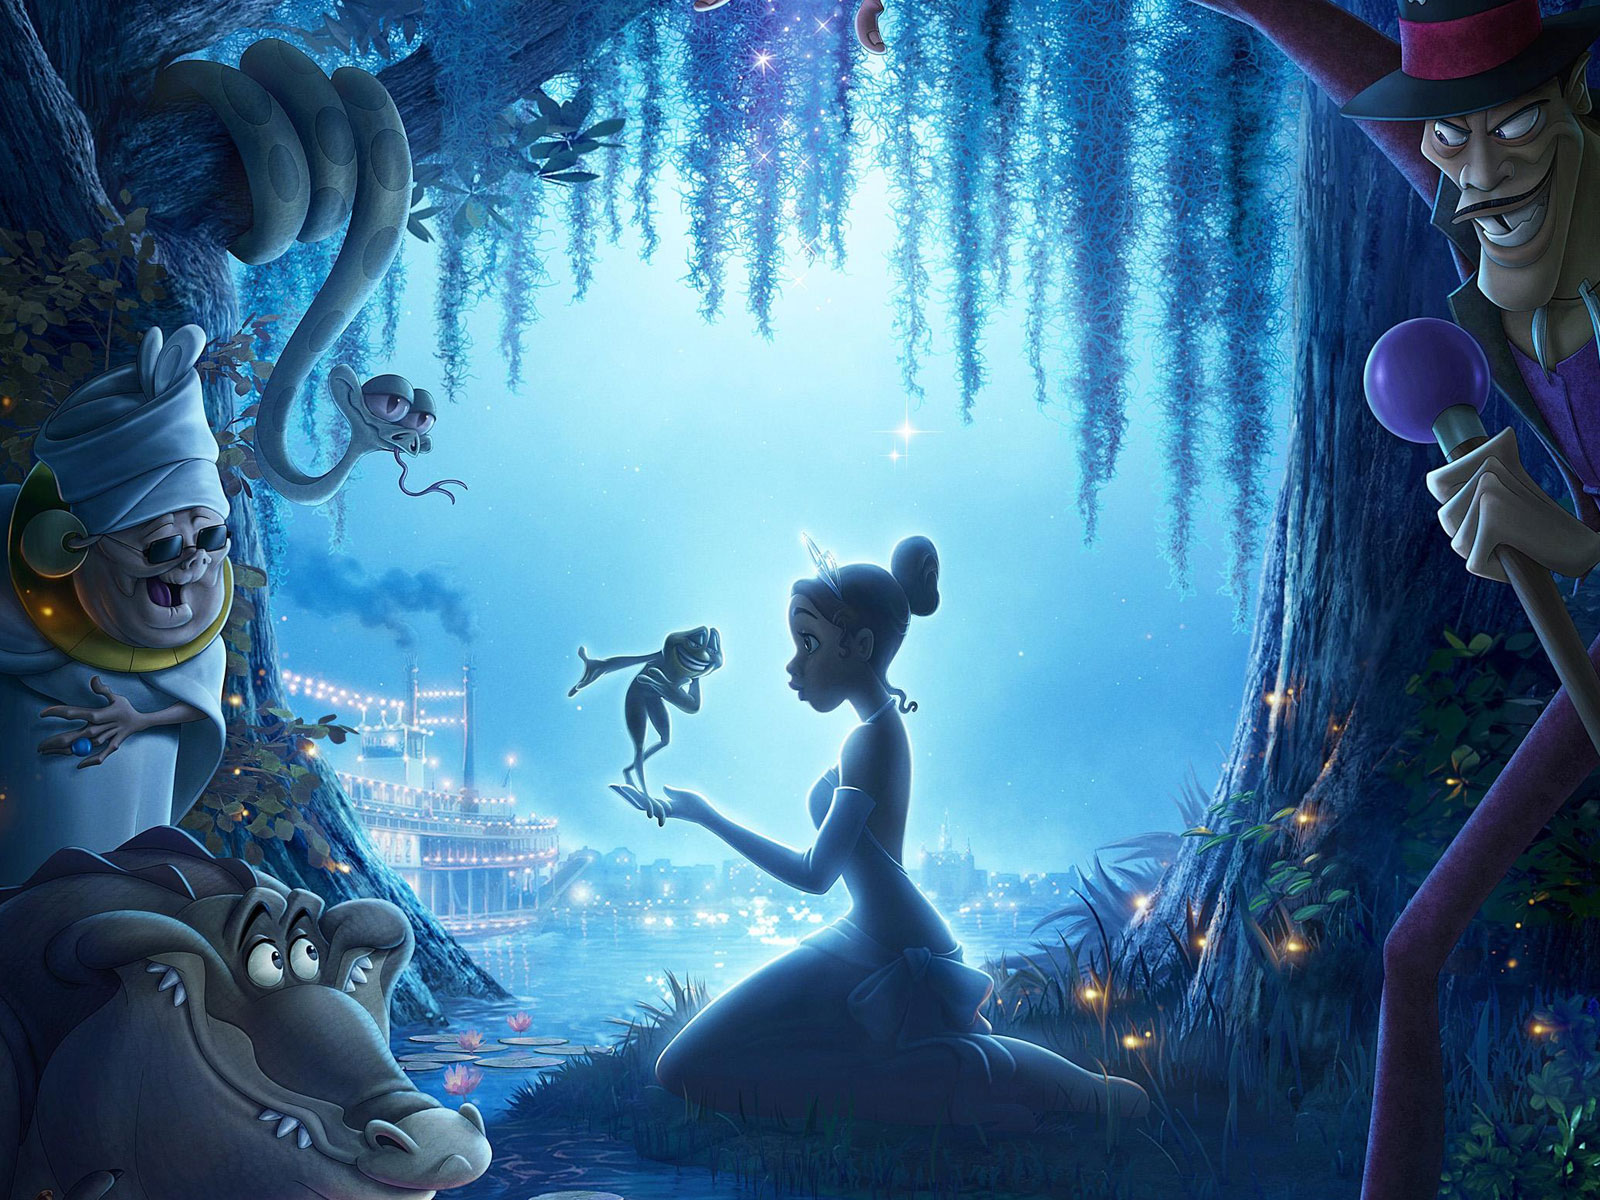 Tiana & prince naveen in the princess and the frog cartoon.